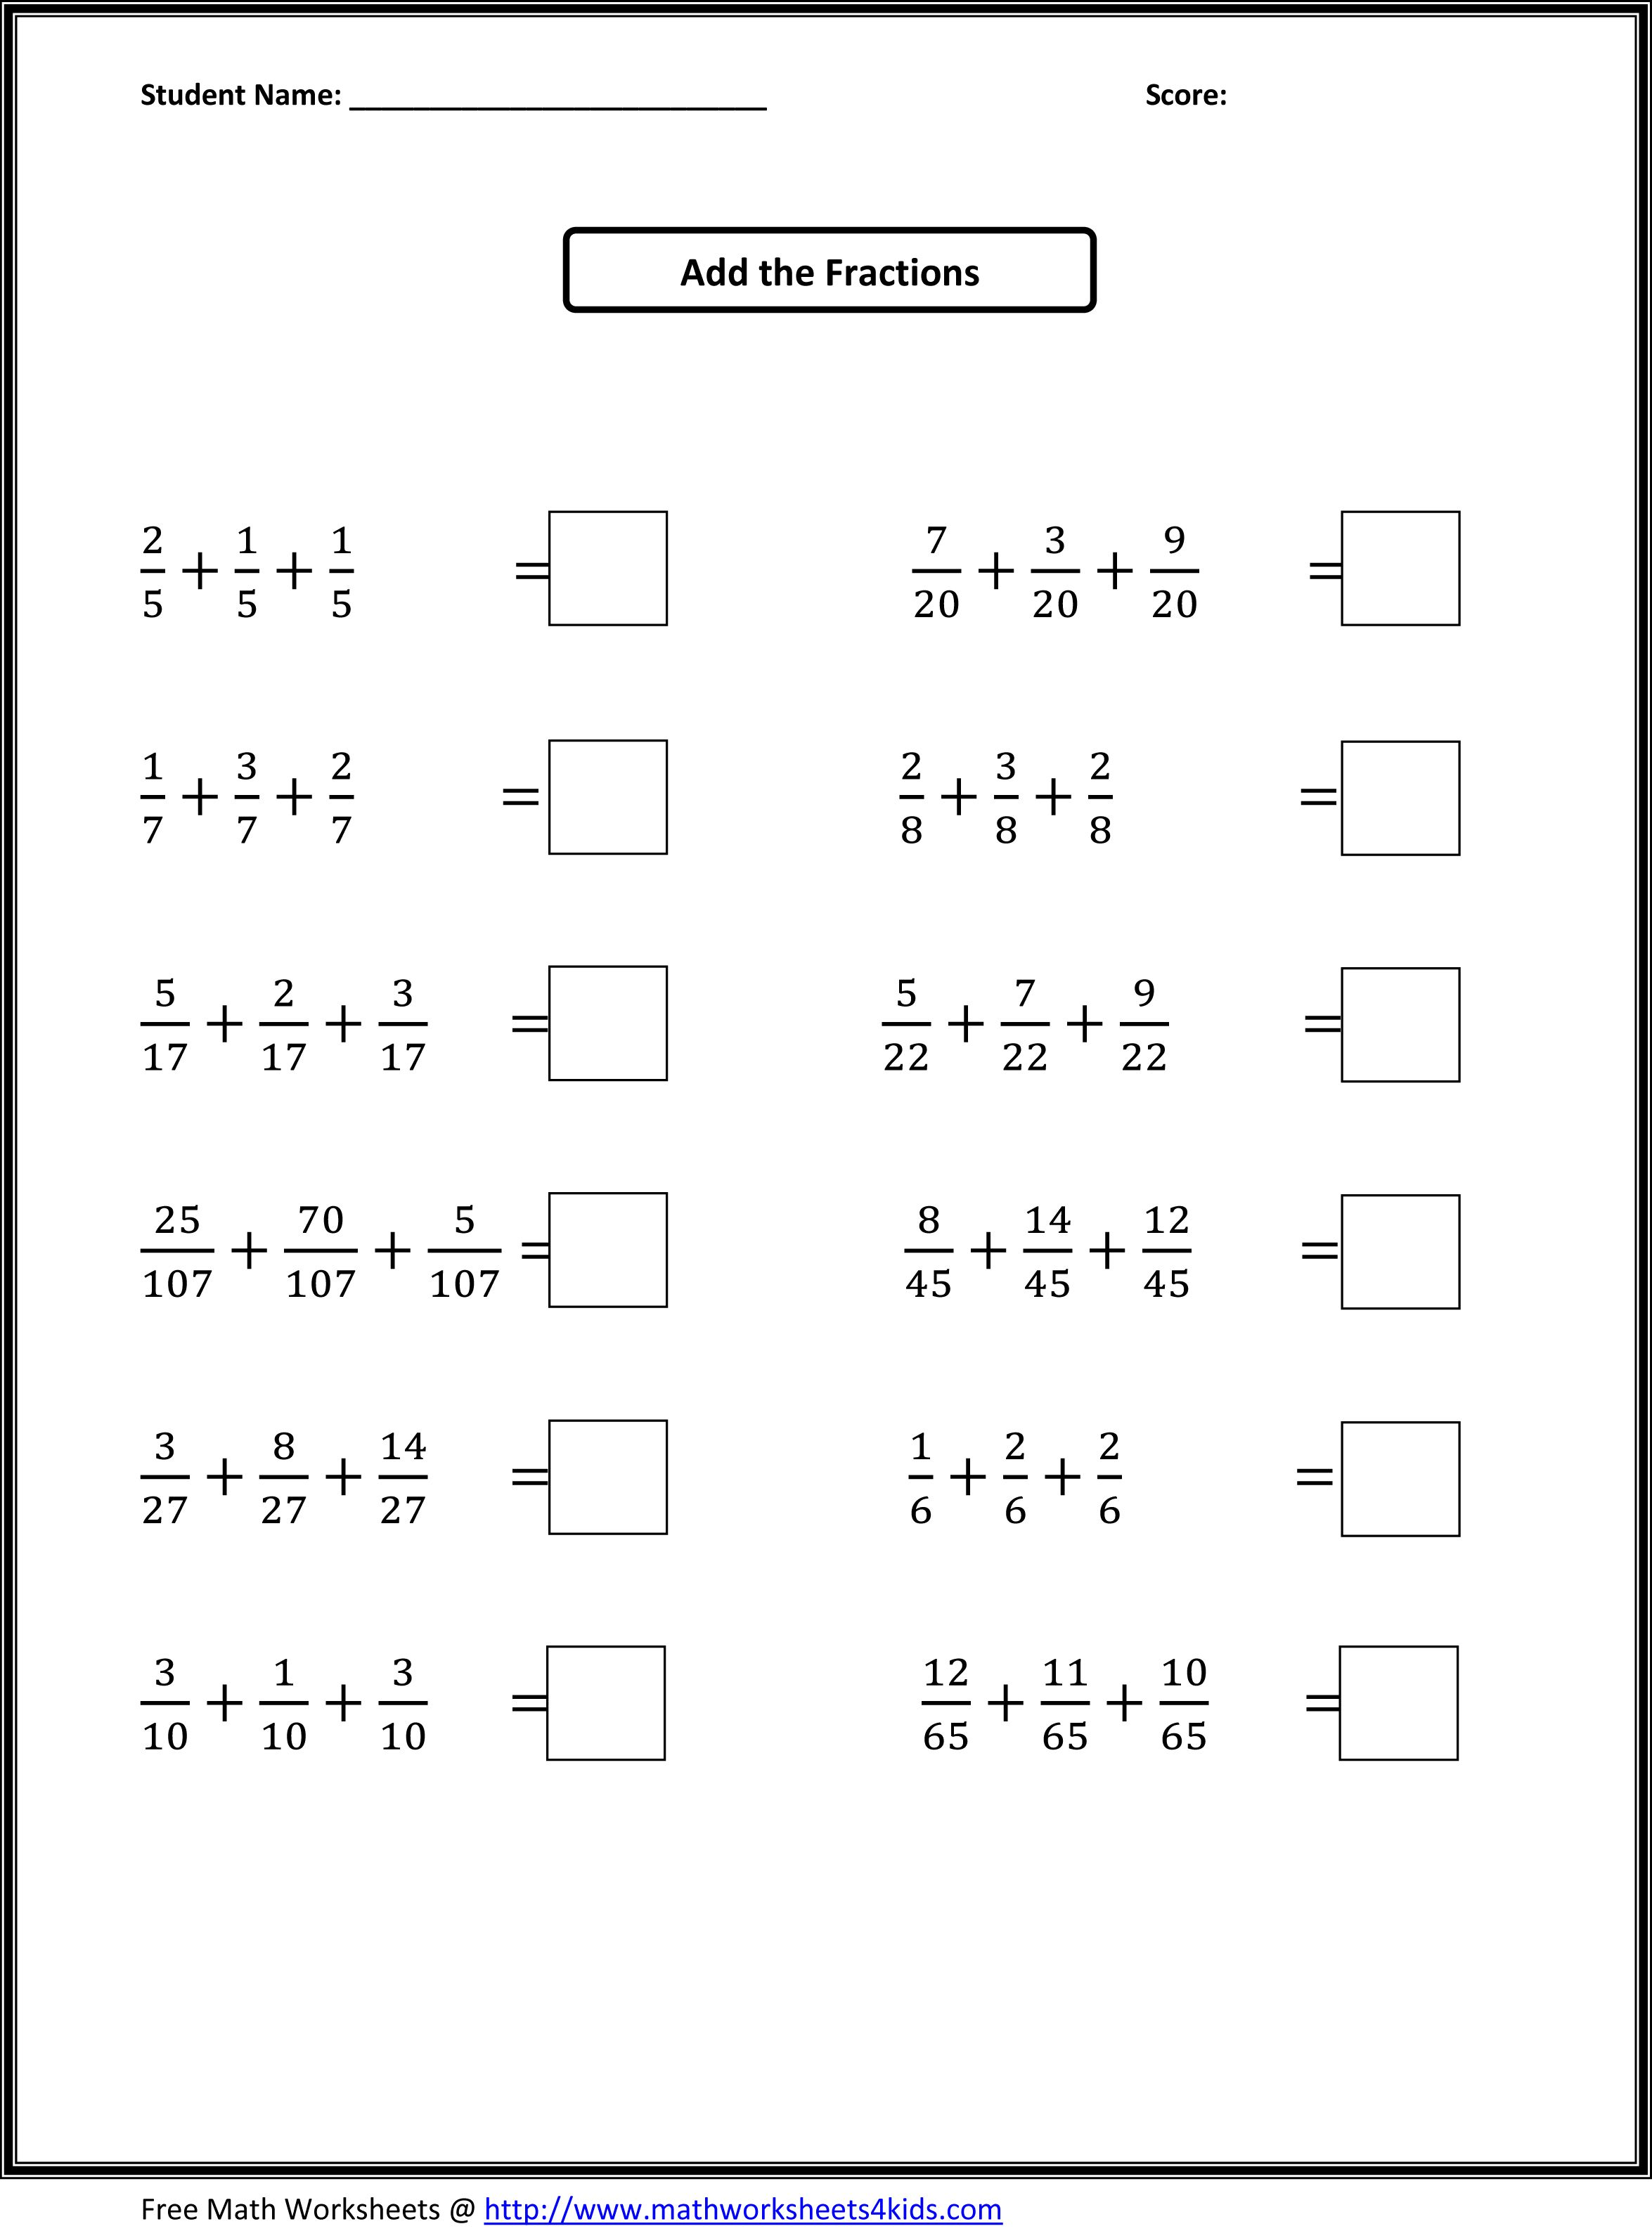 Pin By Lozza Jack On Math Worksheets Fractions Worksheets 4th Grade Math Worksheets 10th Grade Math Worksheets